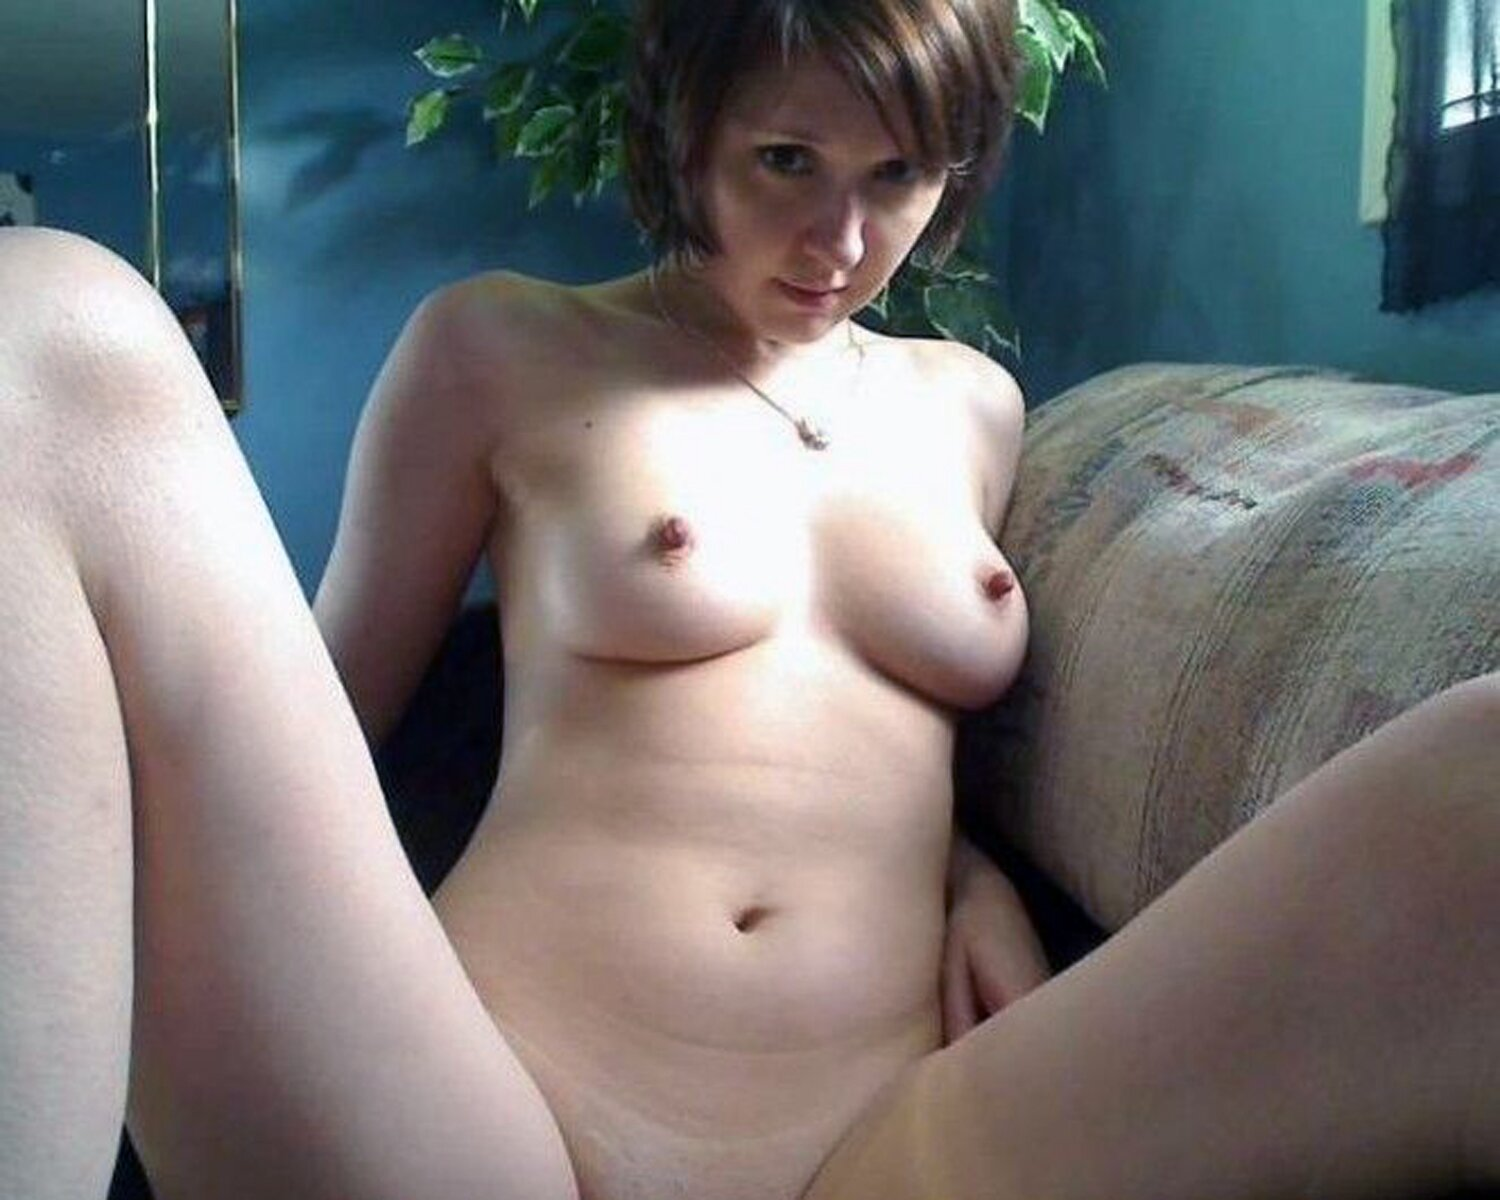 amateur sex (@amateursex2) | twitter